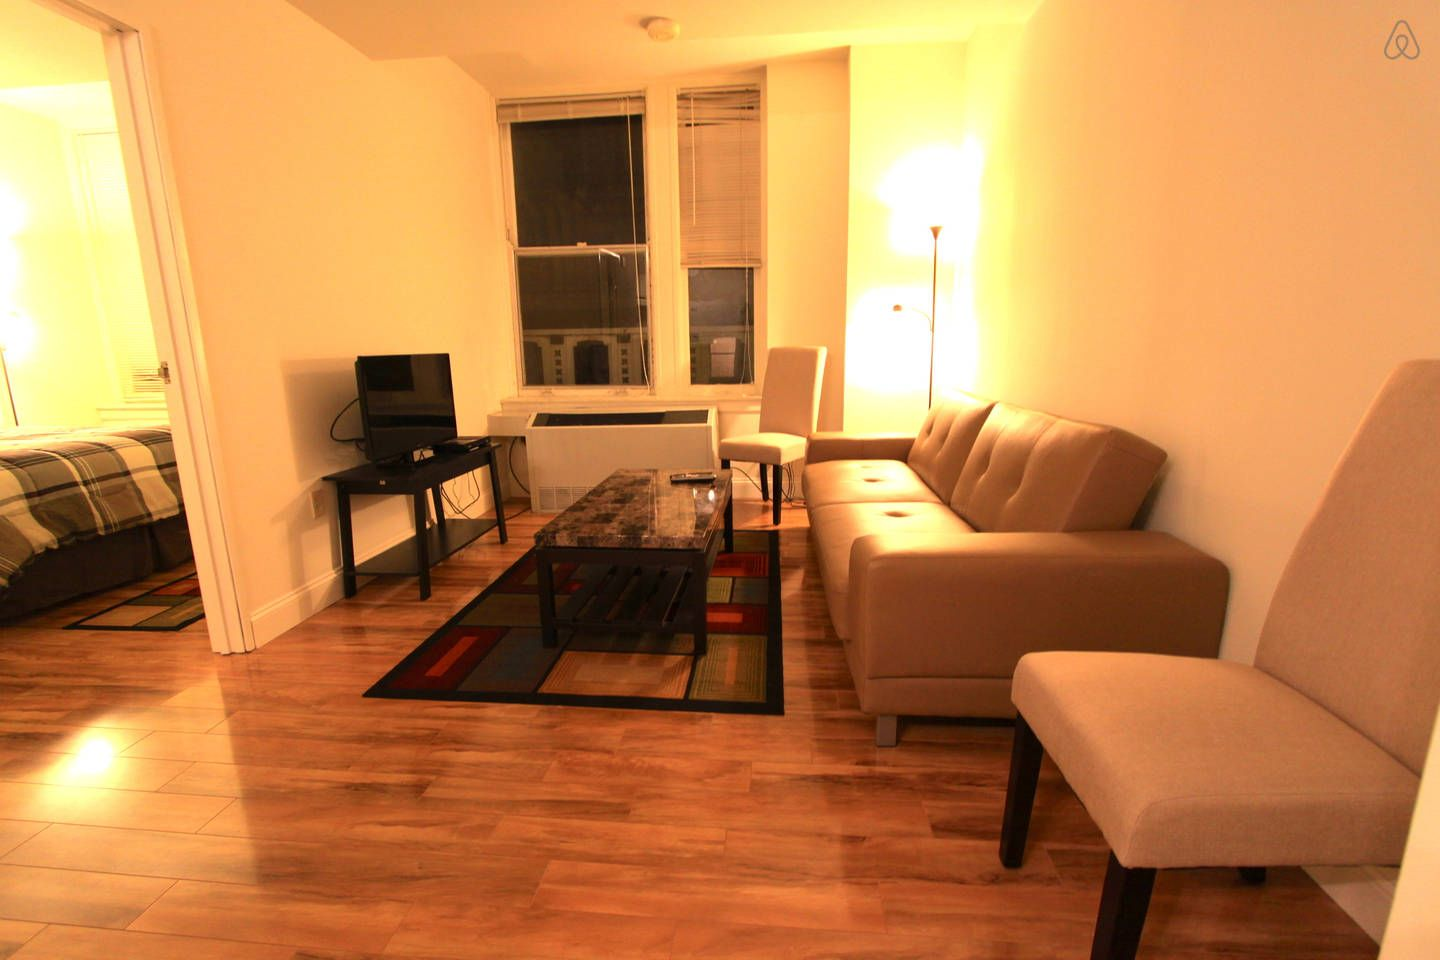 Cozy Flat by Beale Downtown Memphis - vacation rental in Memphis, Tennessee. View more: #MemphisTennesseeVacationRentals